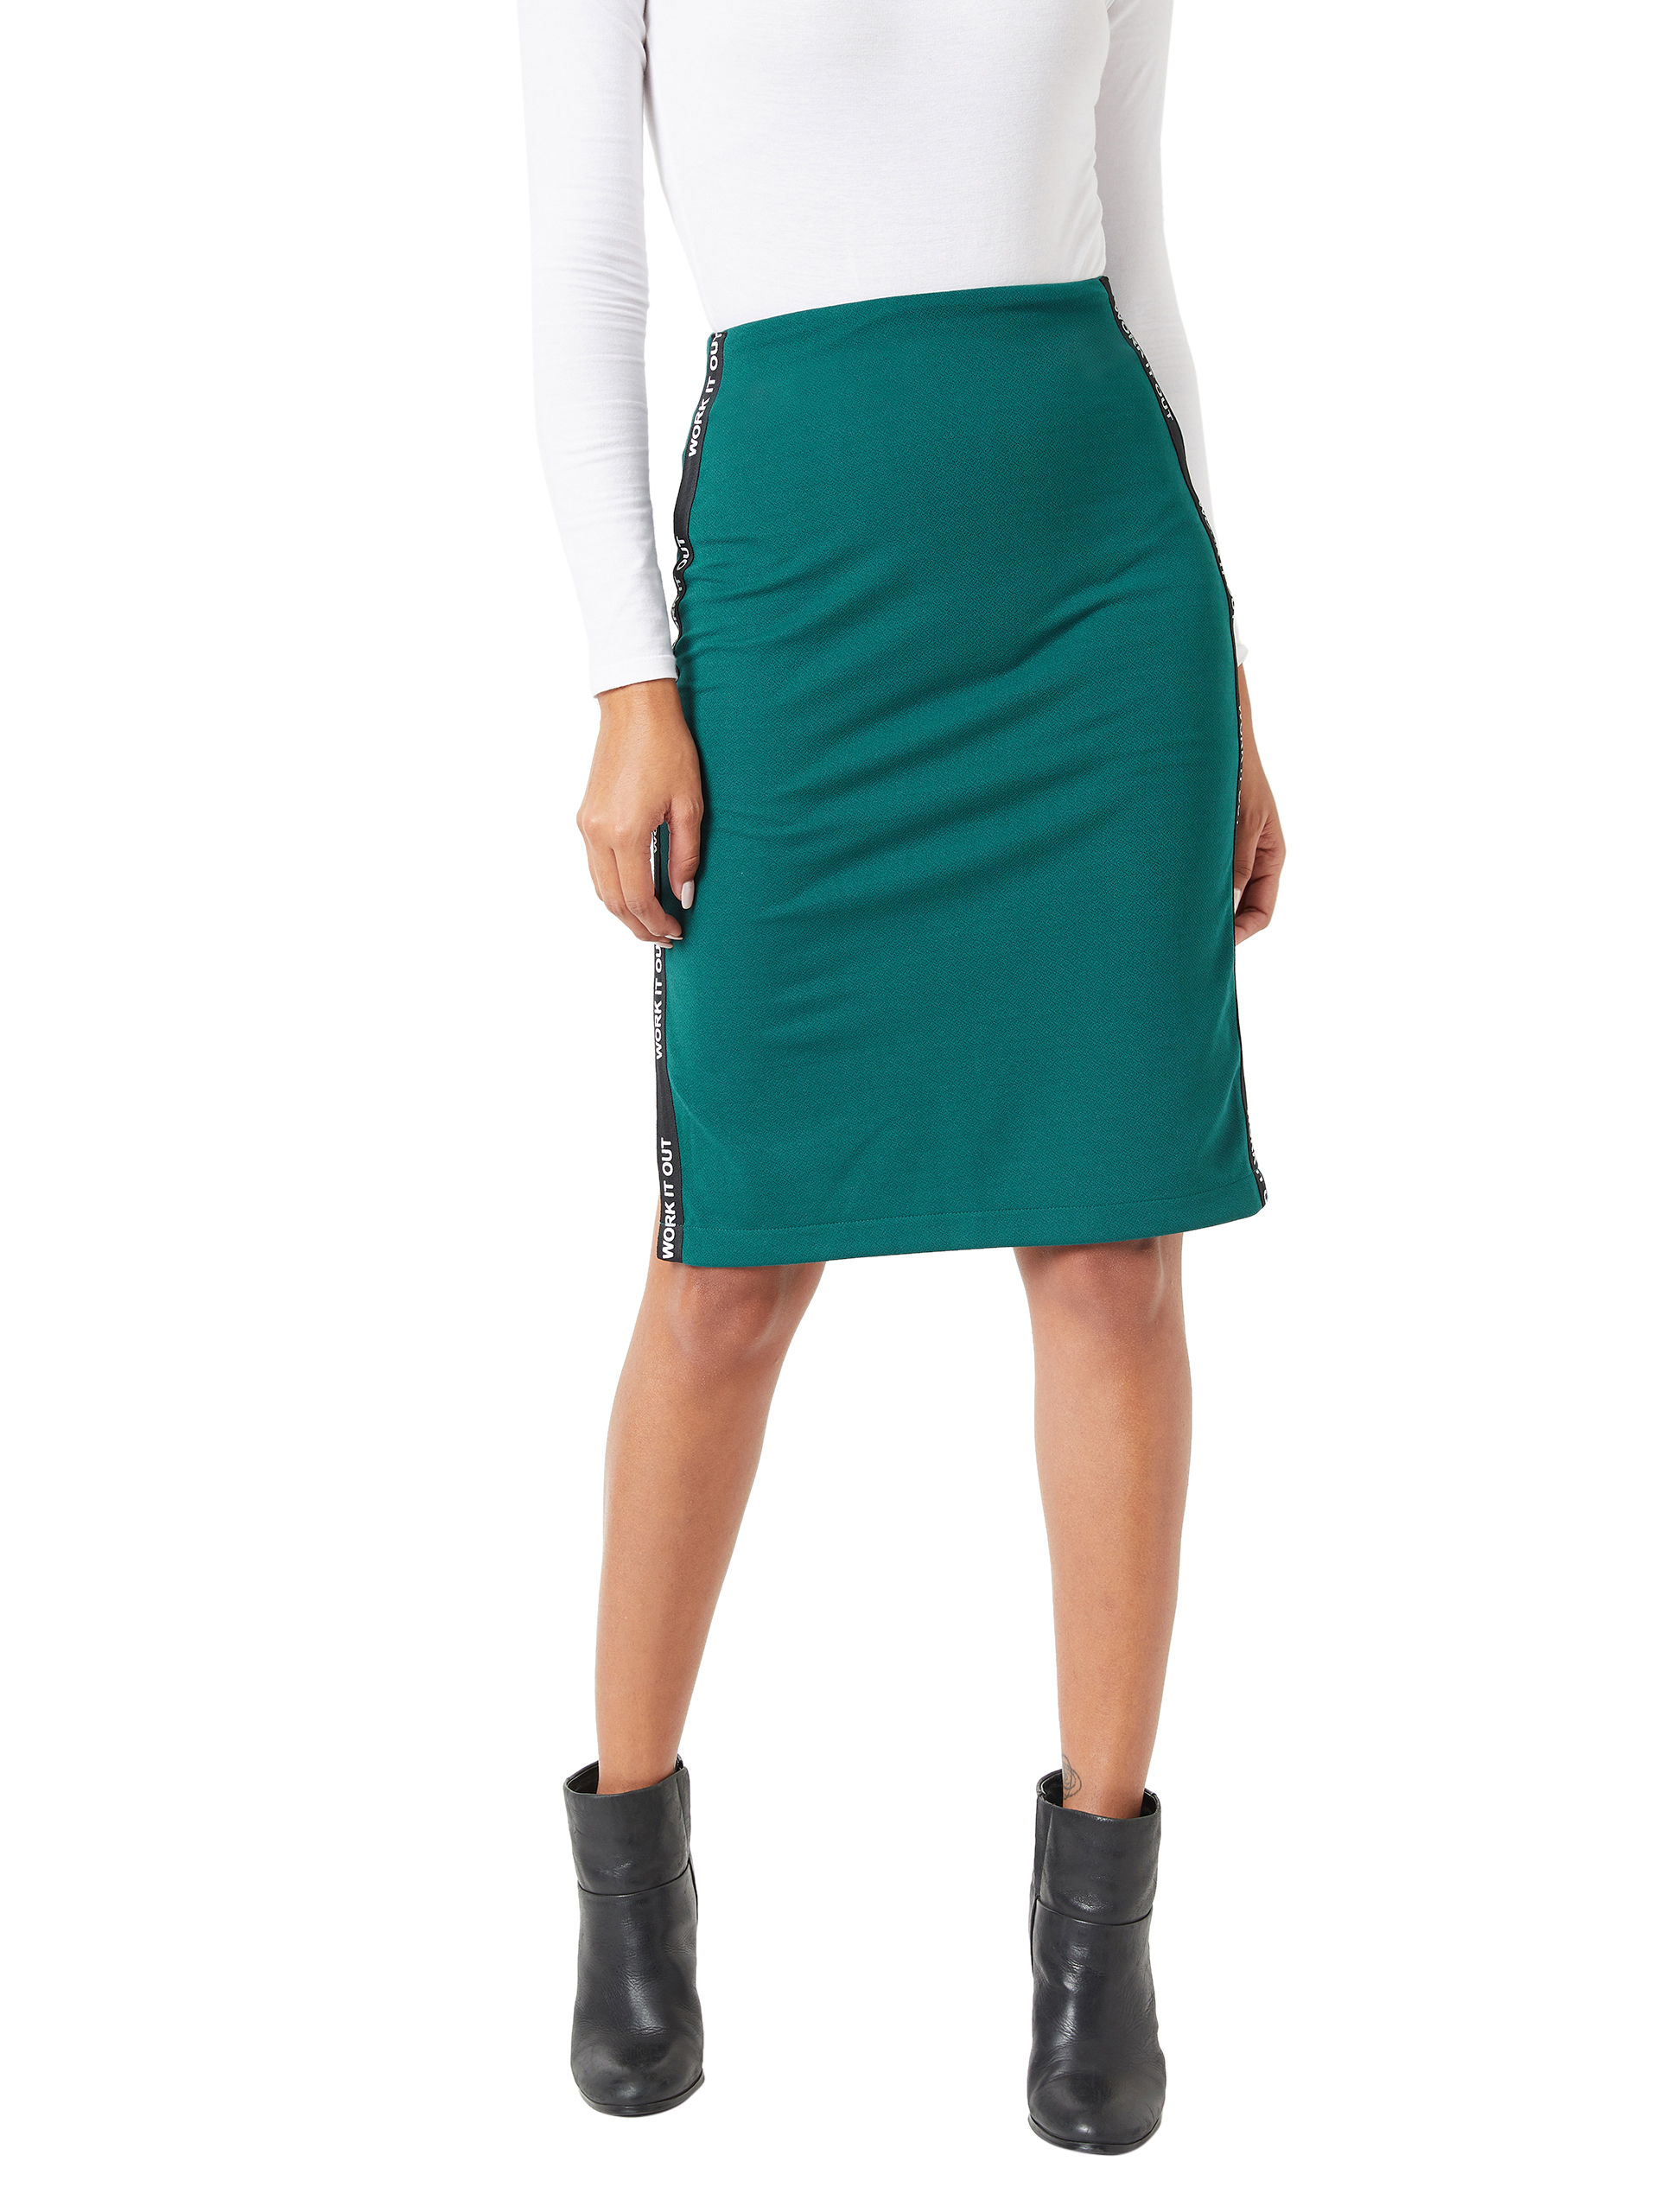 MISS CHASE    Forest Green Printed Twill Tape Detailing Solid Bodycon Midi Skirt